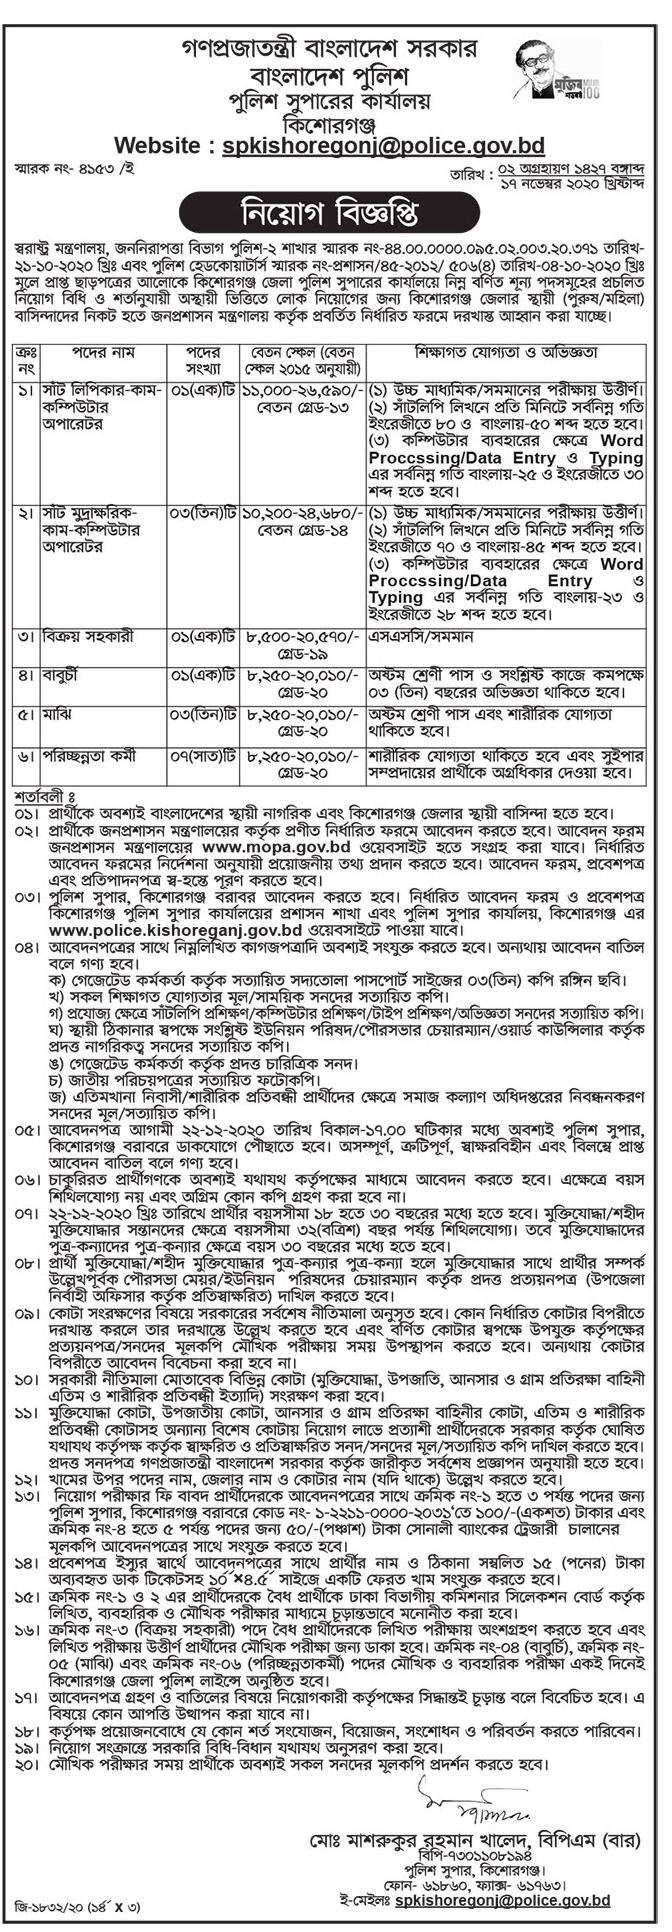 Kishoregonj Police Super office Job Circular 2020